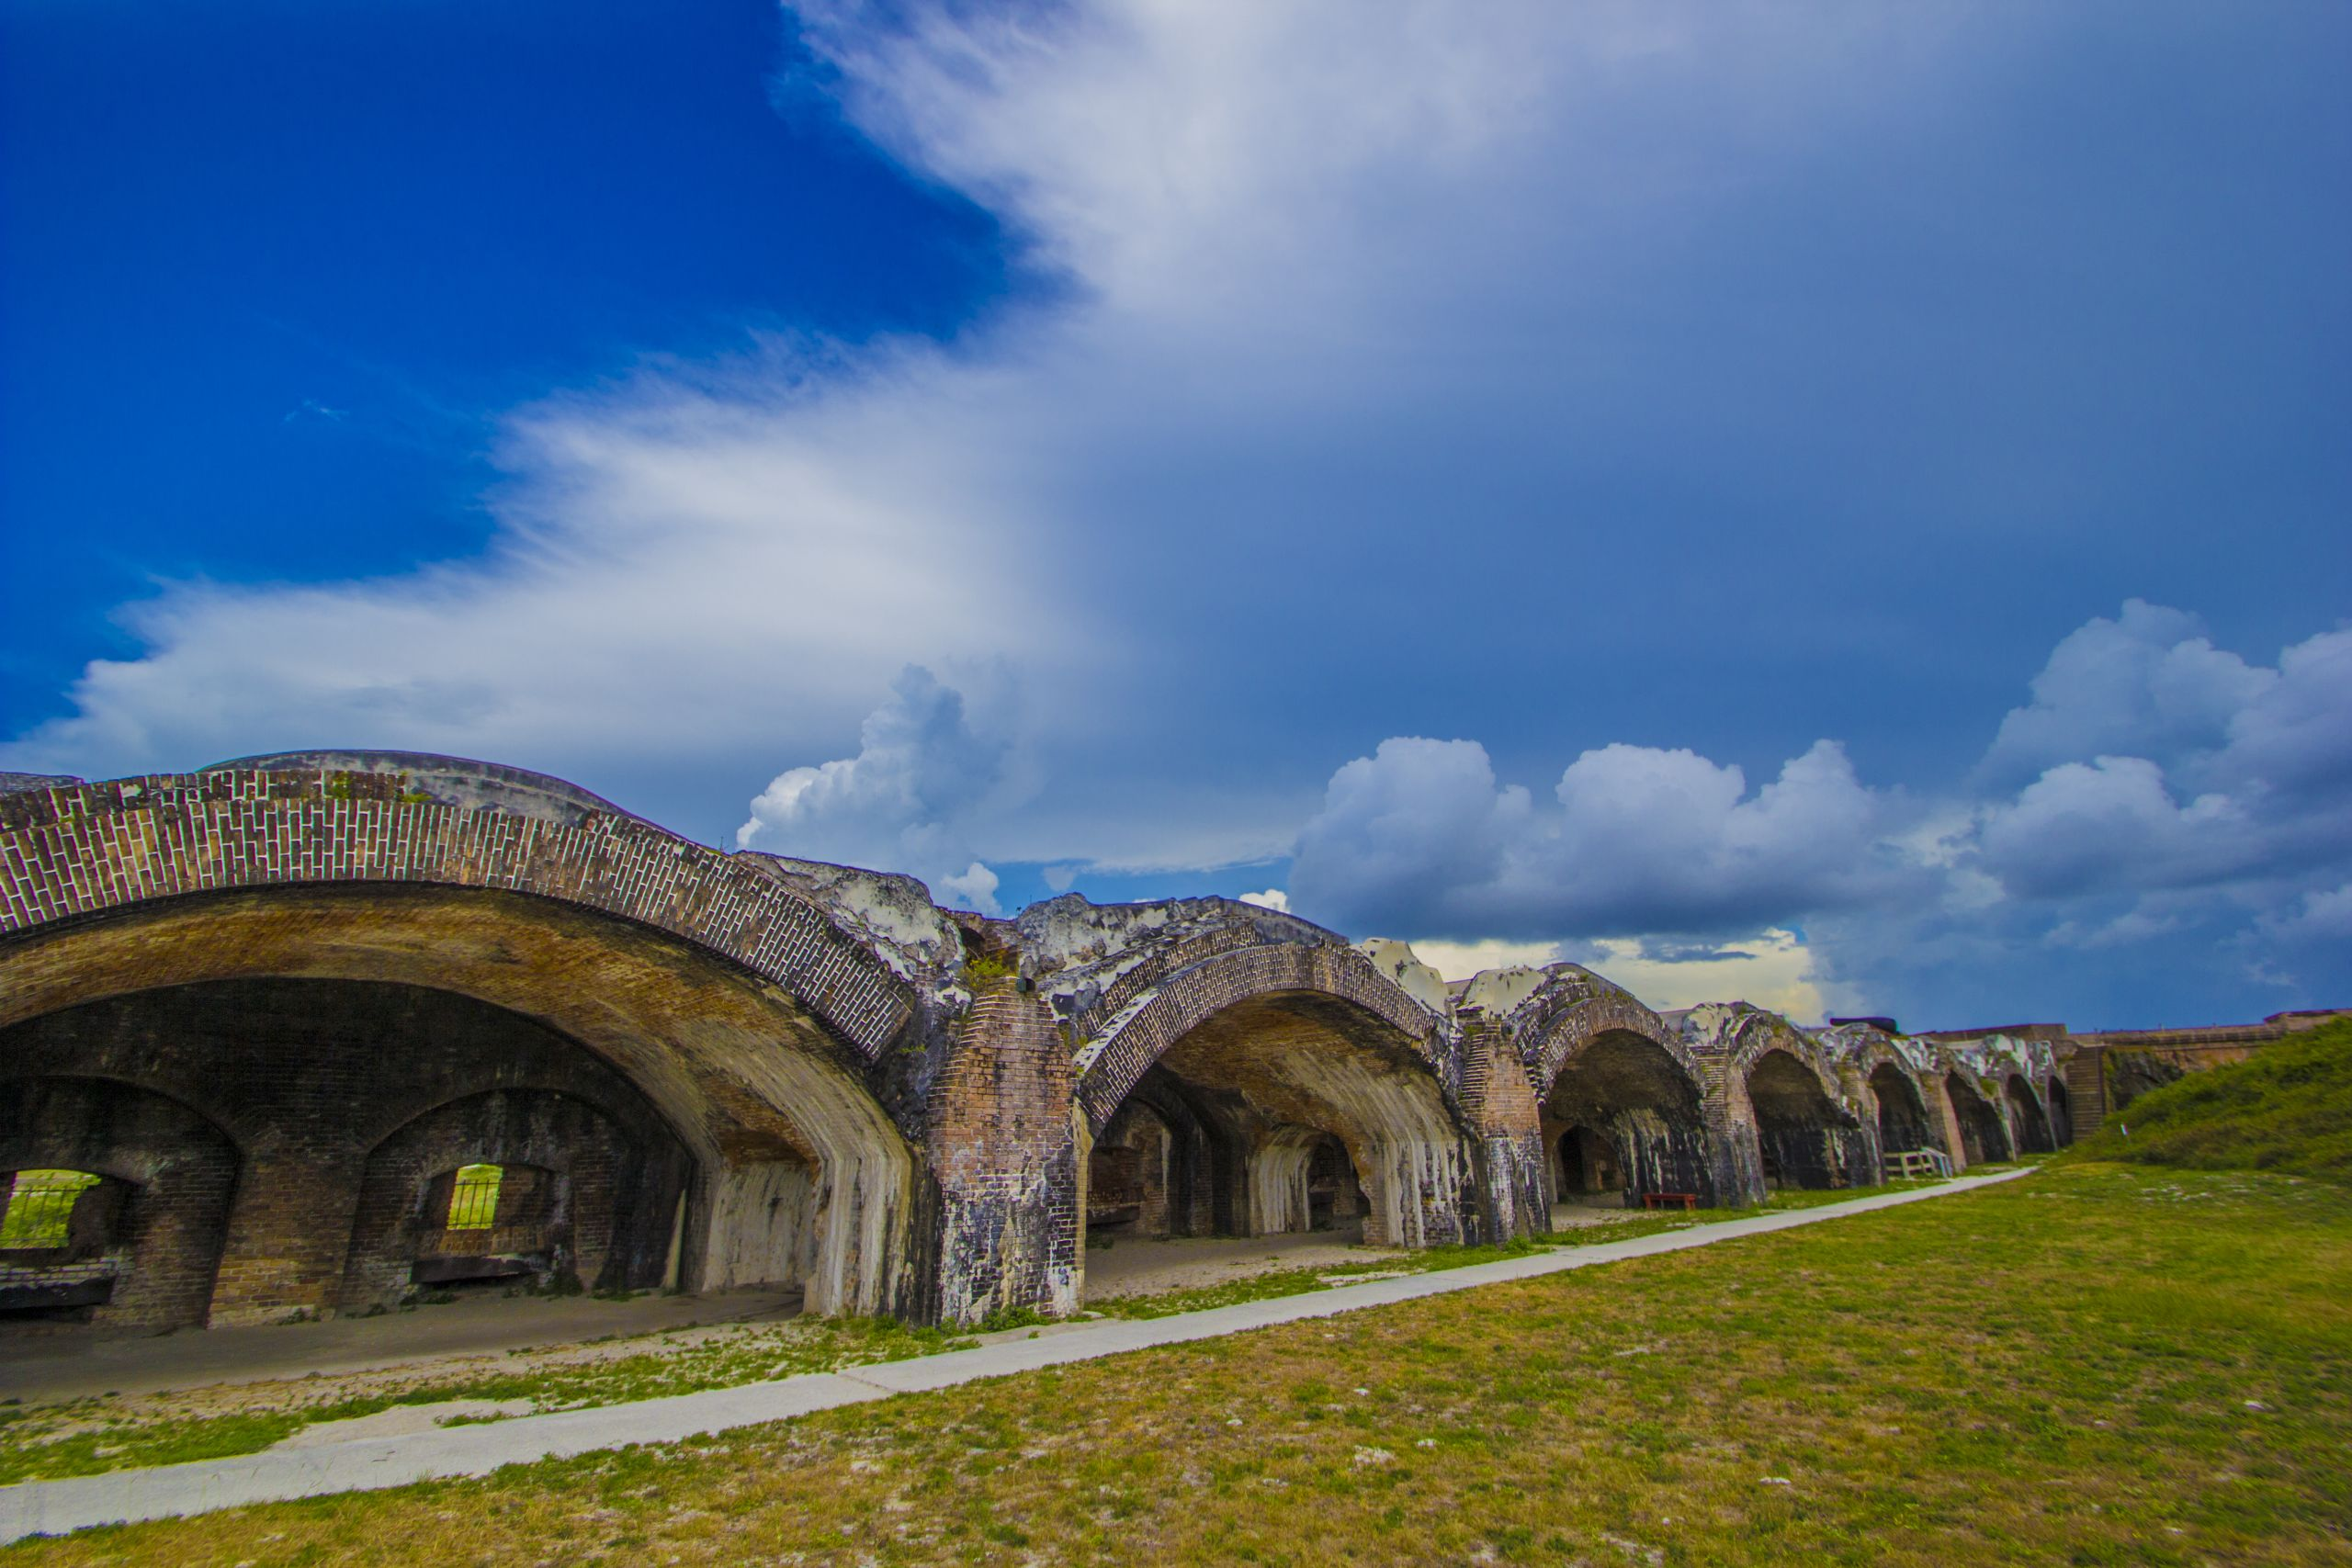 Fort Pickens on Santa Rosa Island